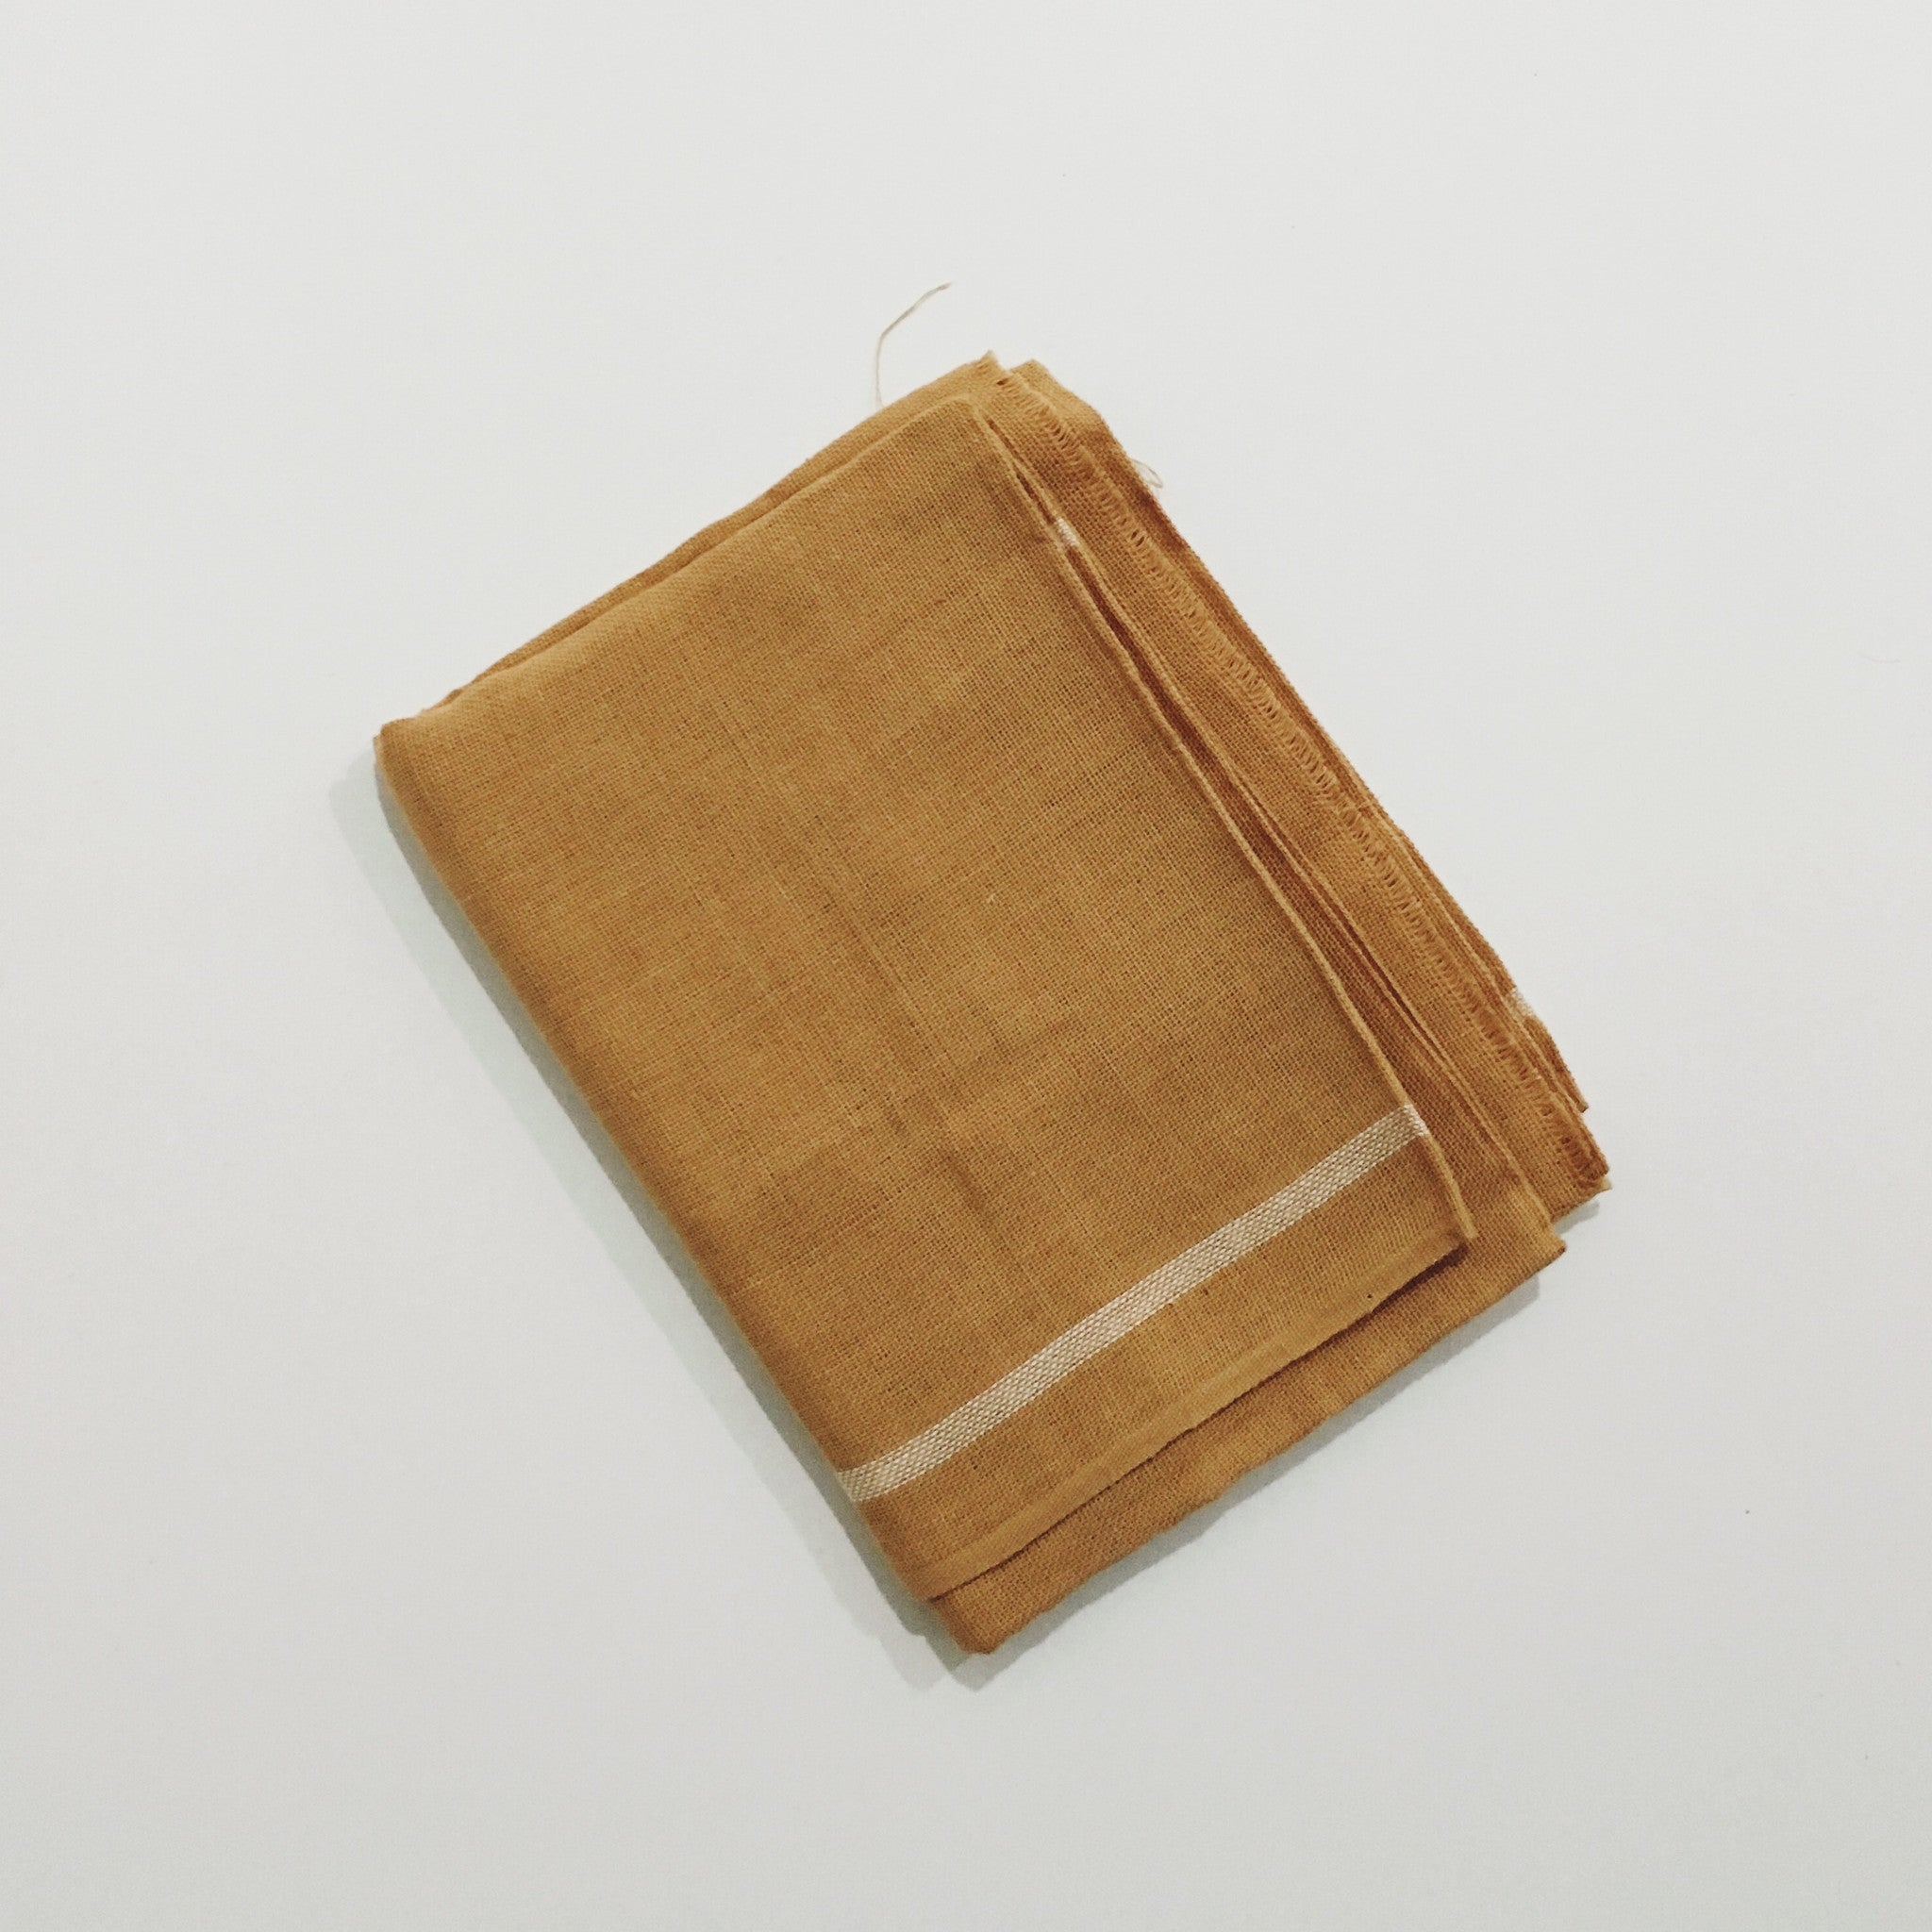 Handloom Caramel Brown Scarf/Towel